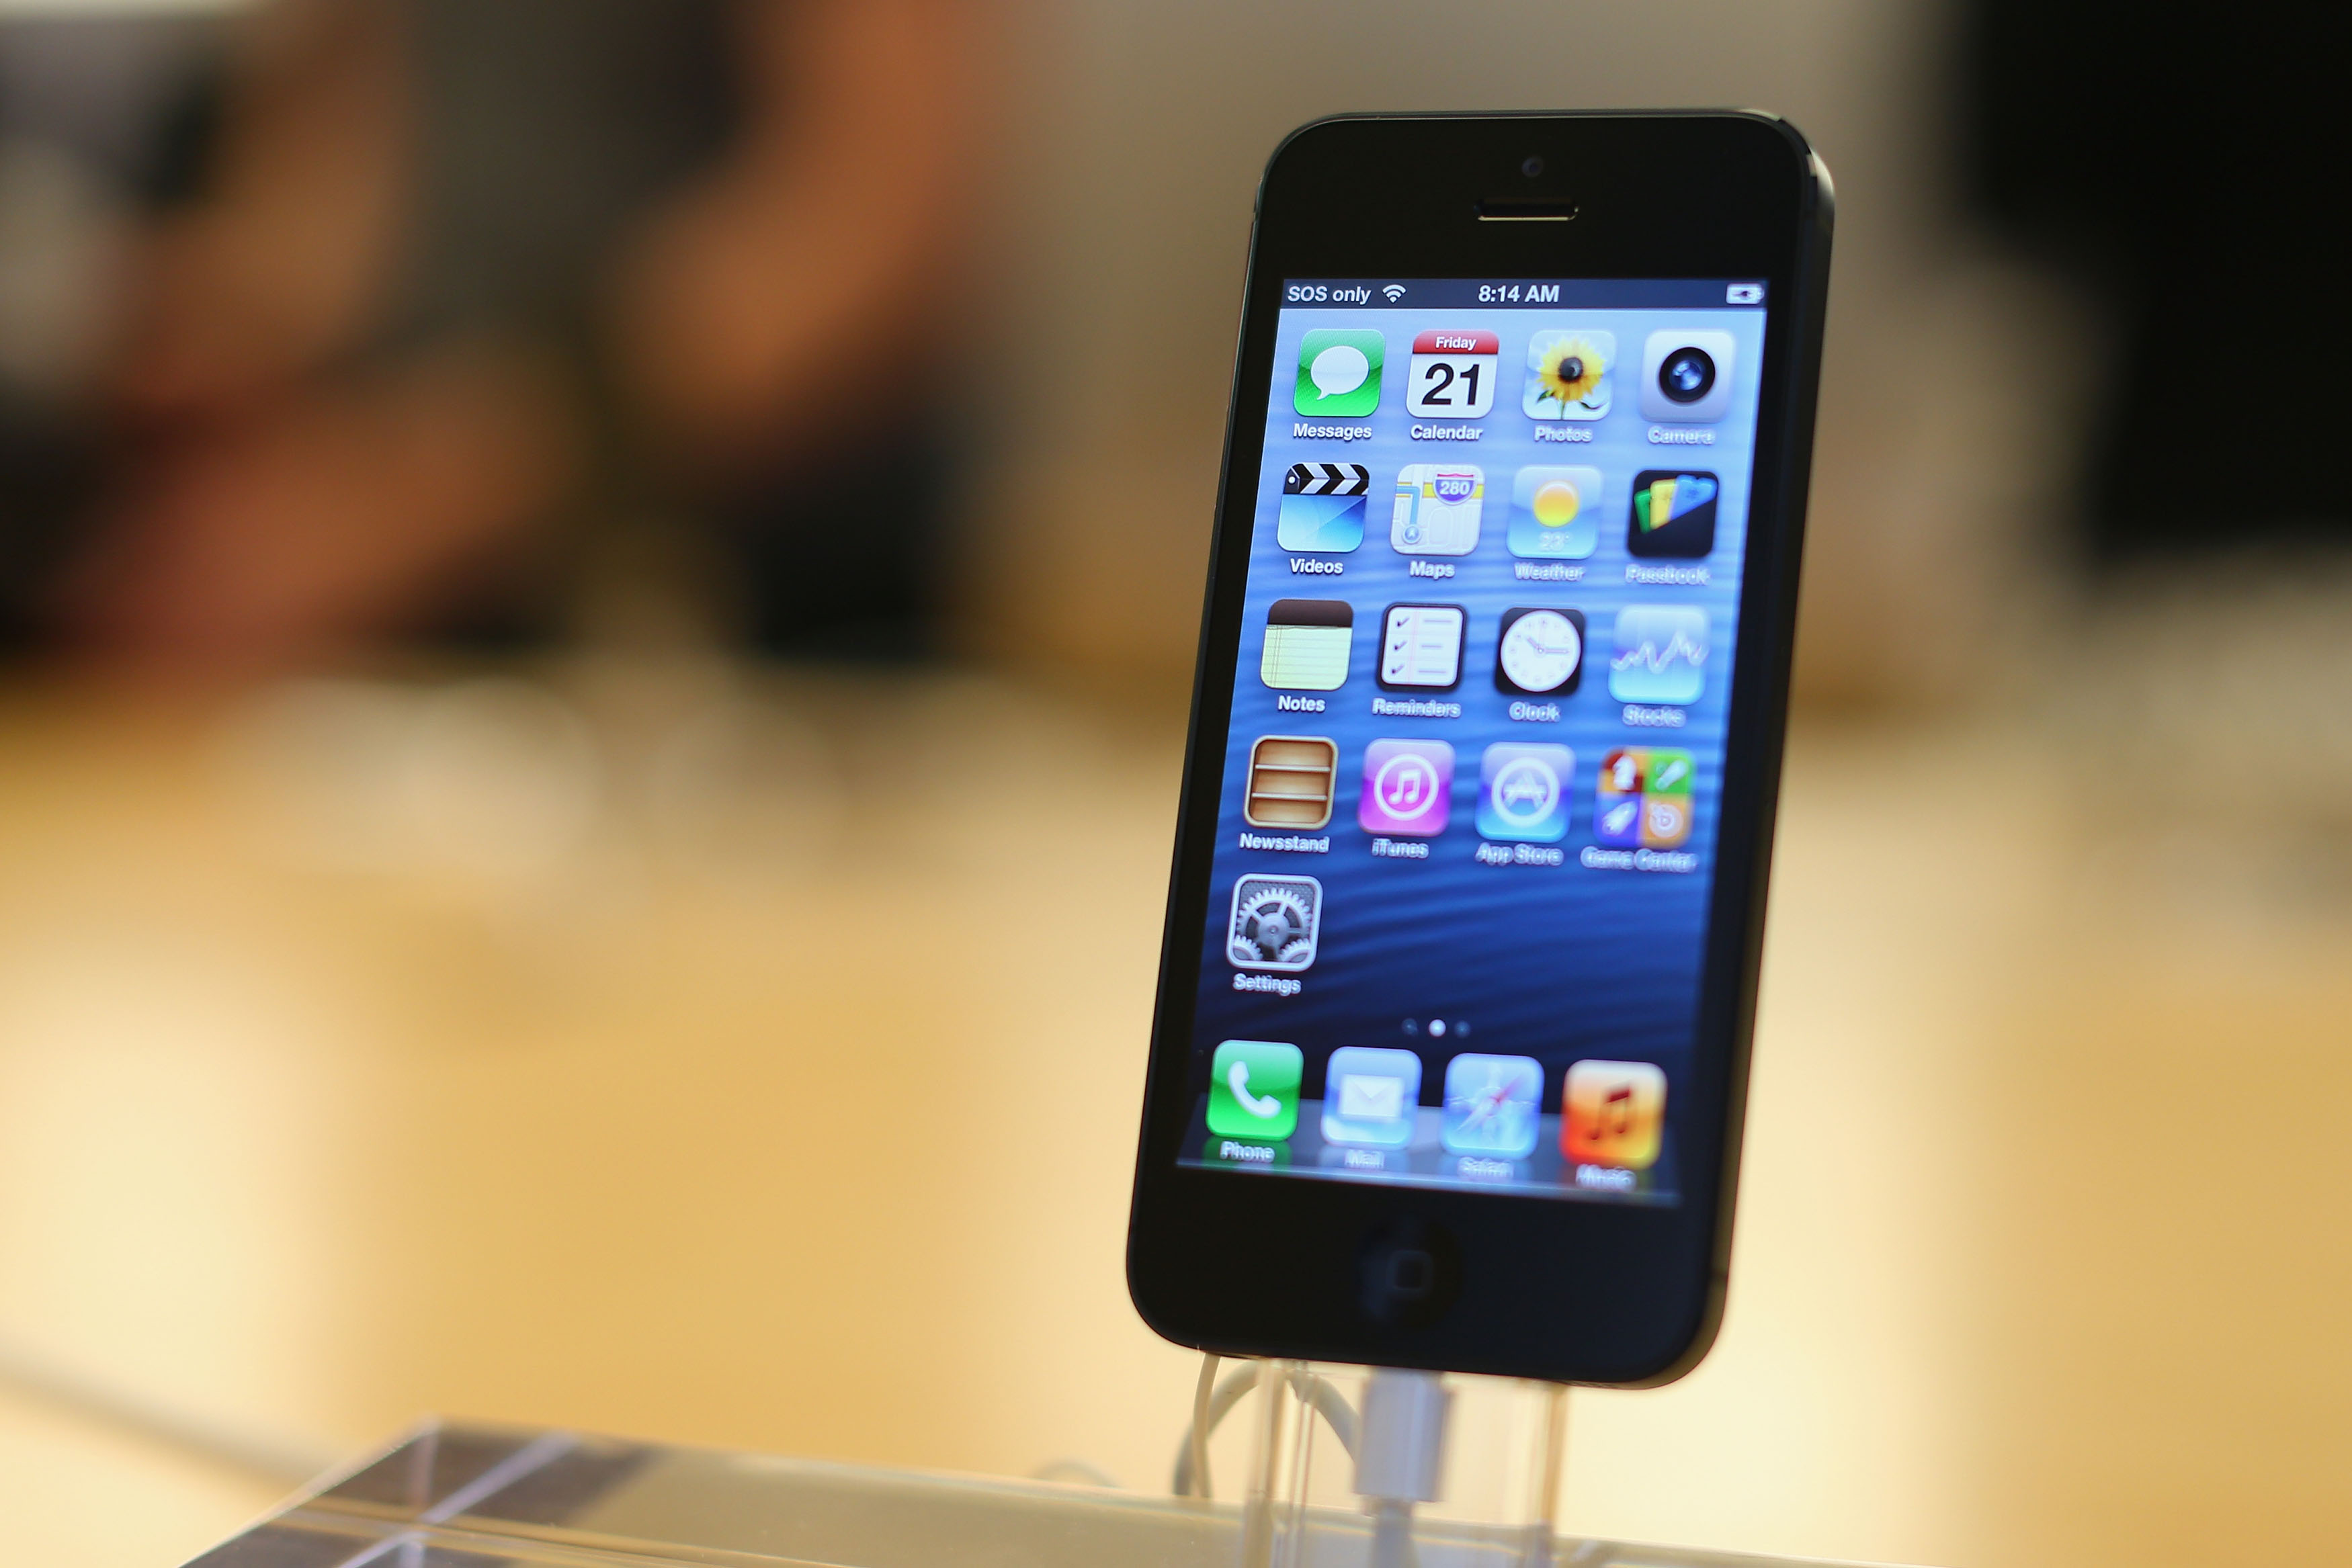 The iPhone 5 smartphone is displayed at the Apple flagship store on George street on September 21, 2012 in Sydney, Australia.